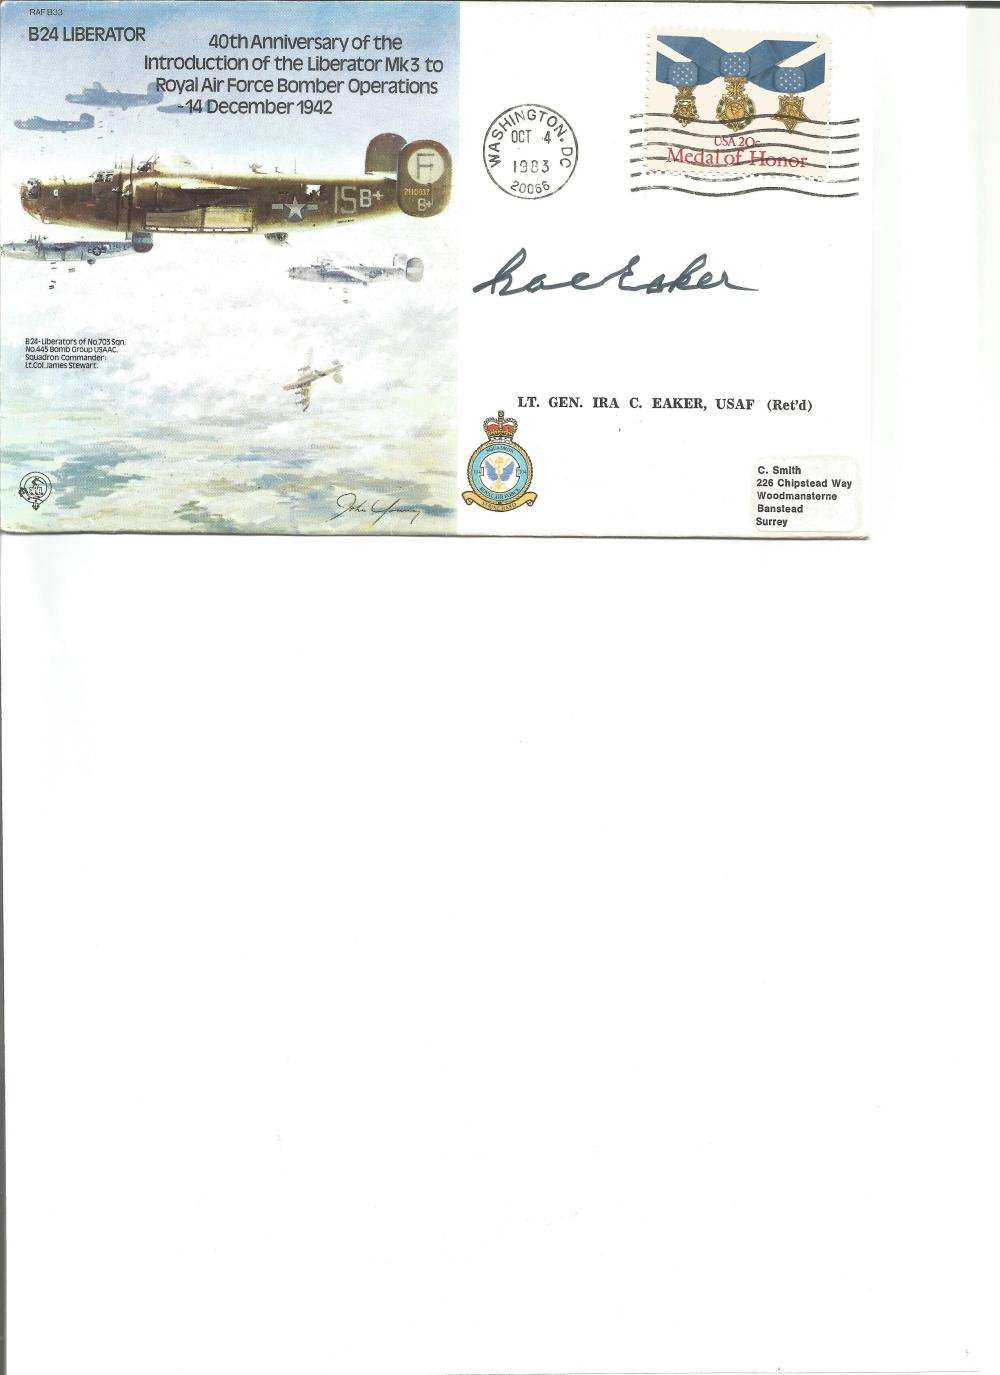 Lt Gen Ira C Eaker signed cover. Good Condition. All signed pieces come with a Certificate of